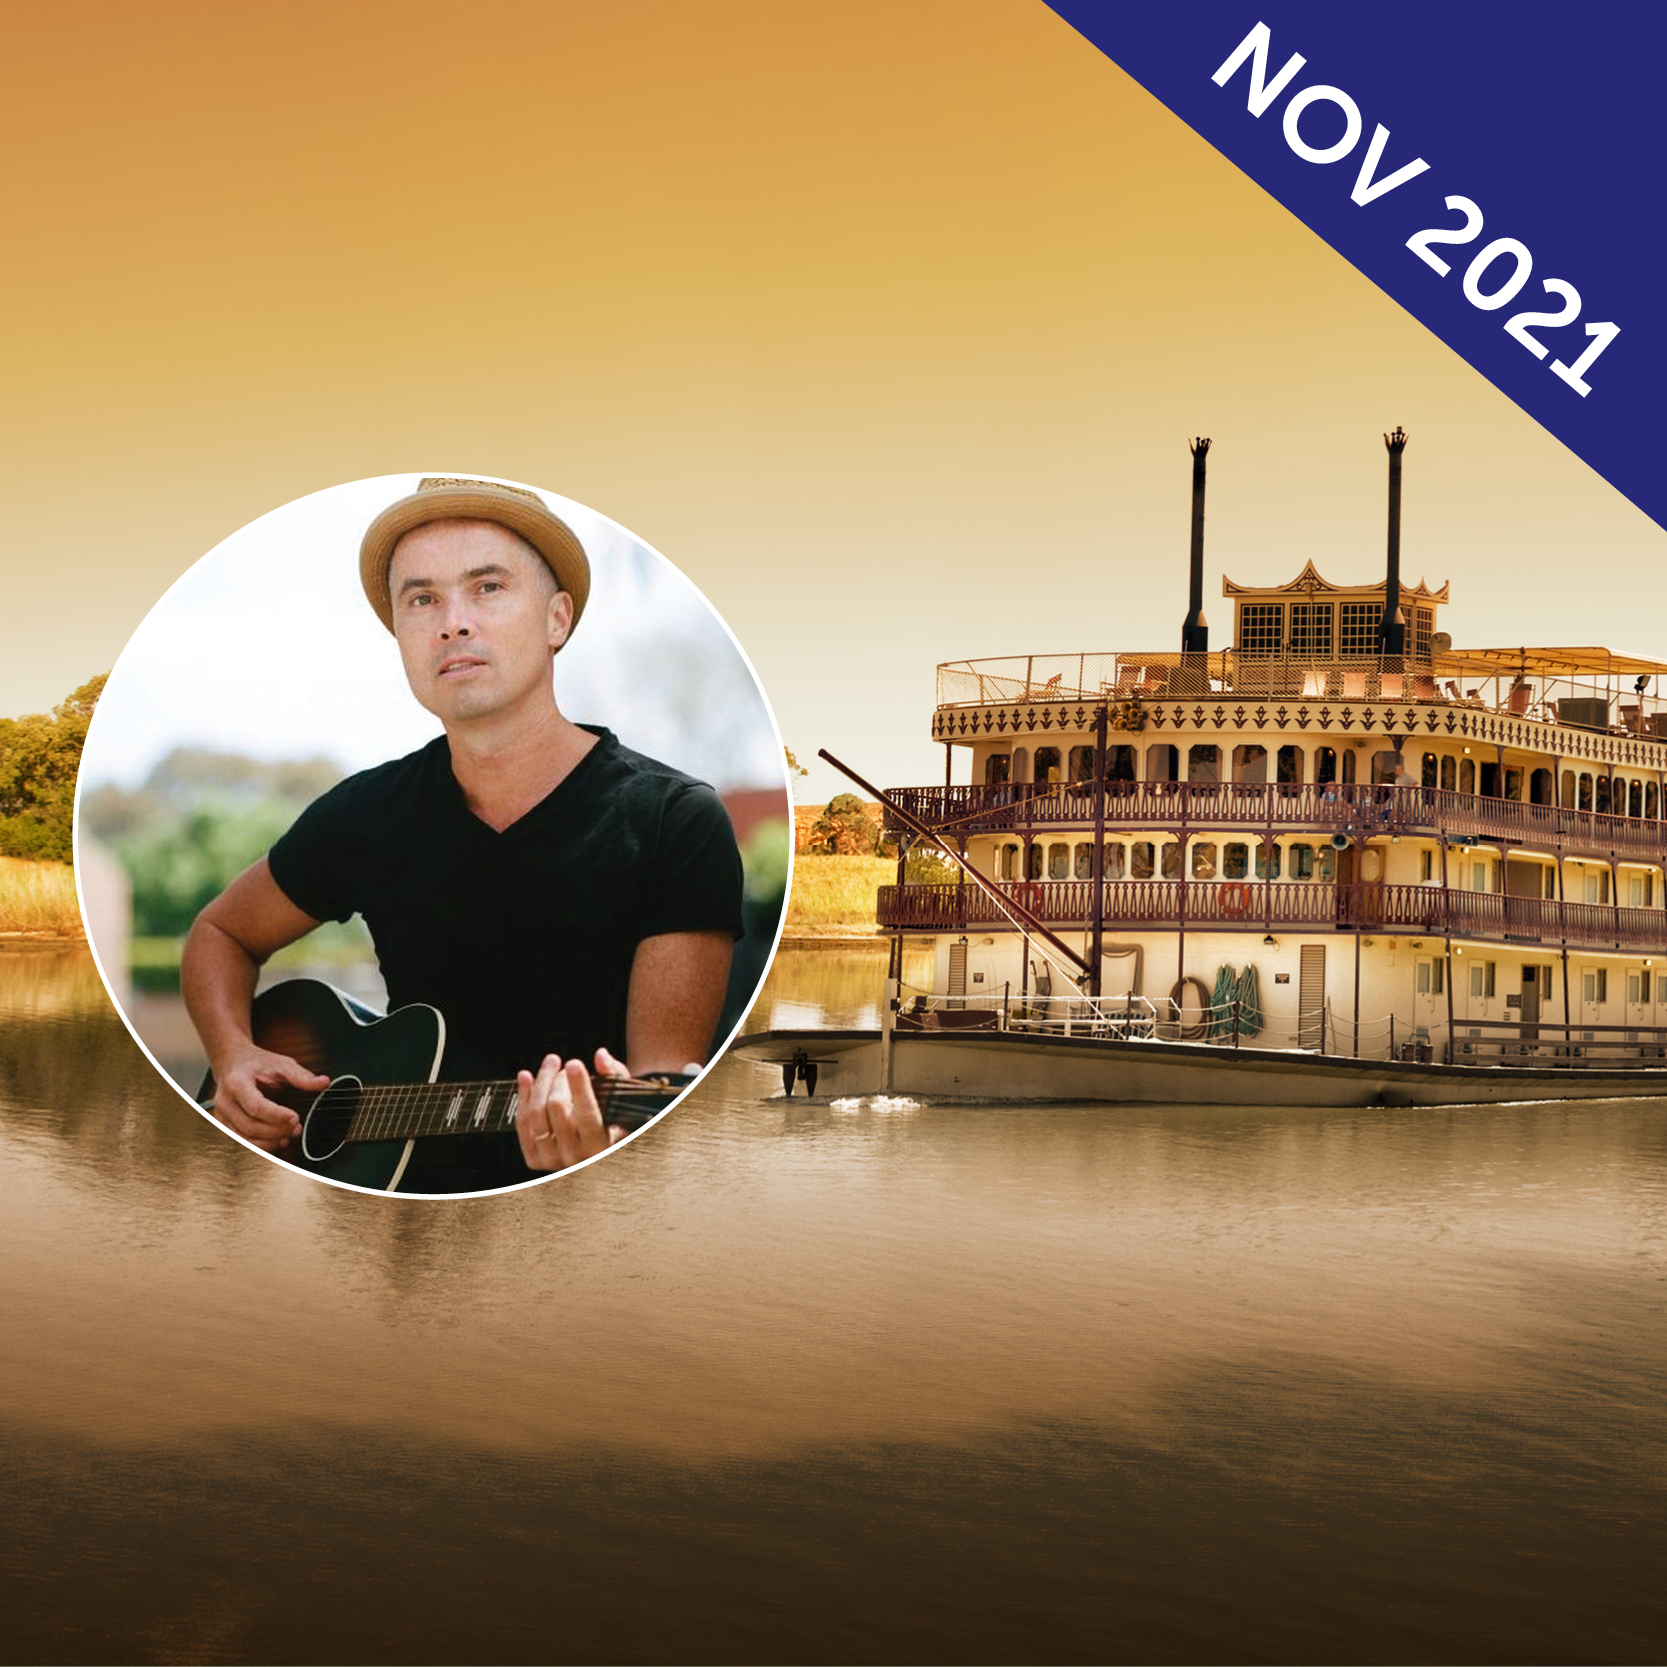 Murray River Cruise and South Australia Blues Music Tour with Jules Boult